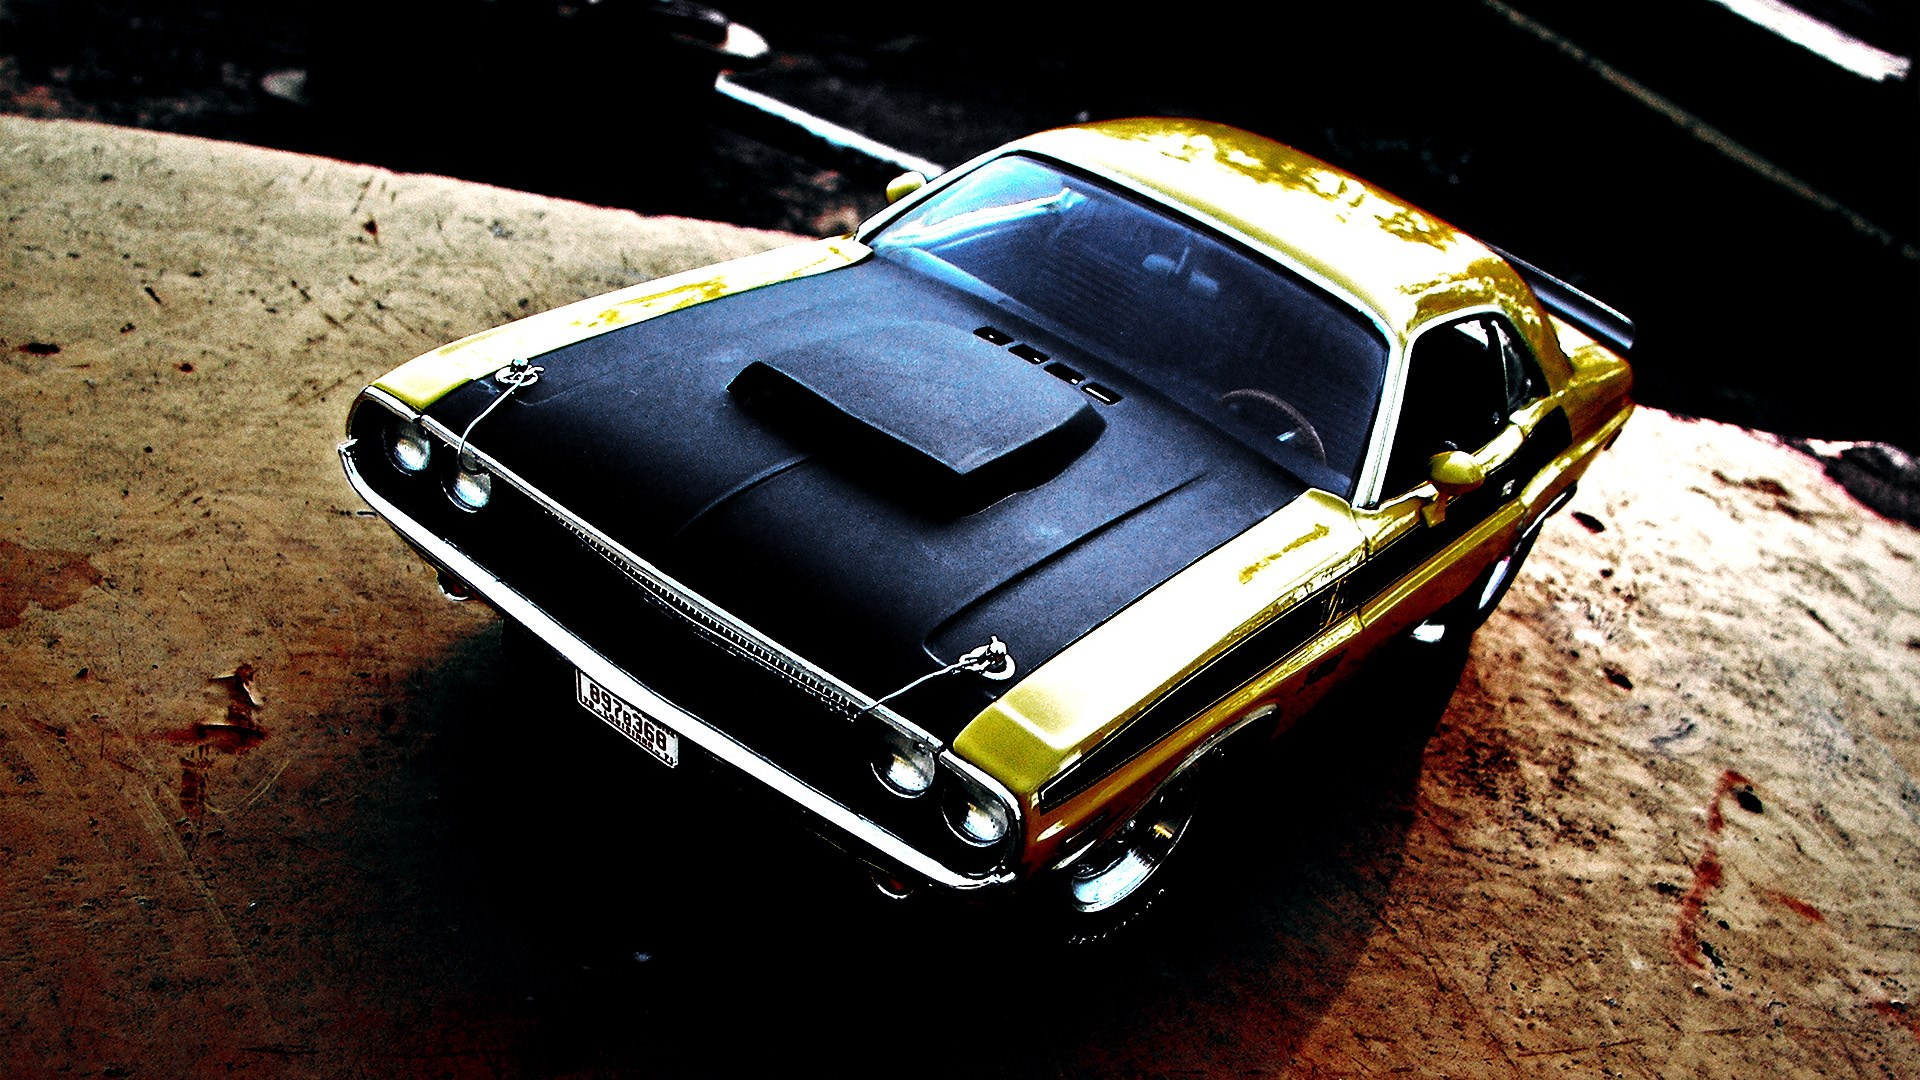 Buddy-Allford-dodge-challenger-photography-free-1920x1080-px-wallpaper-wp3603735